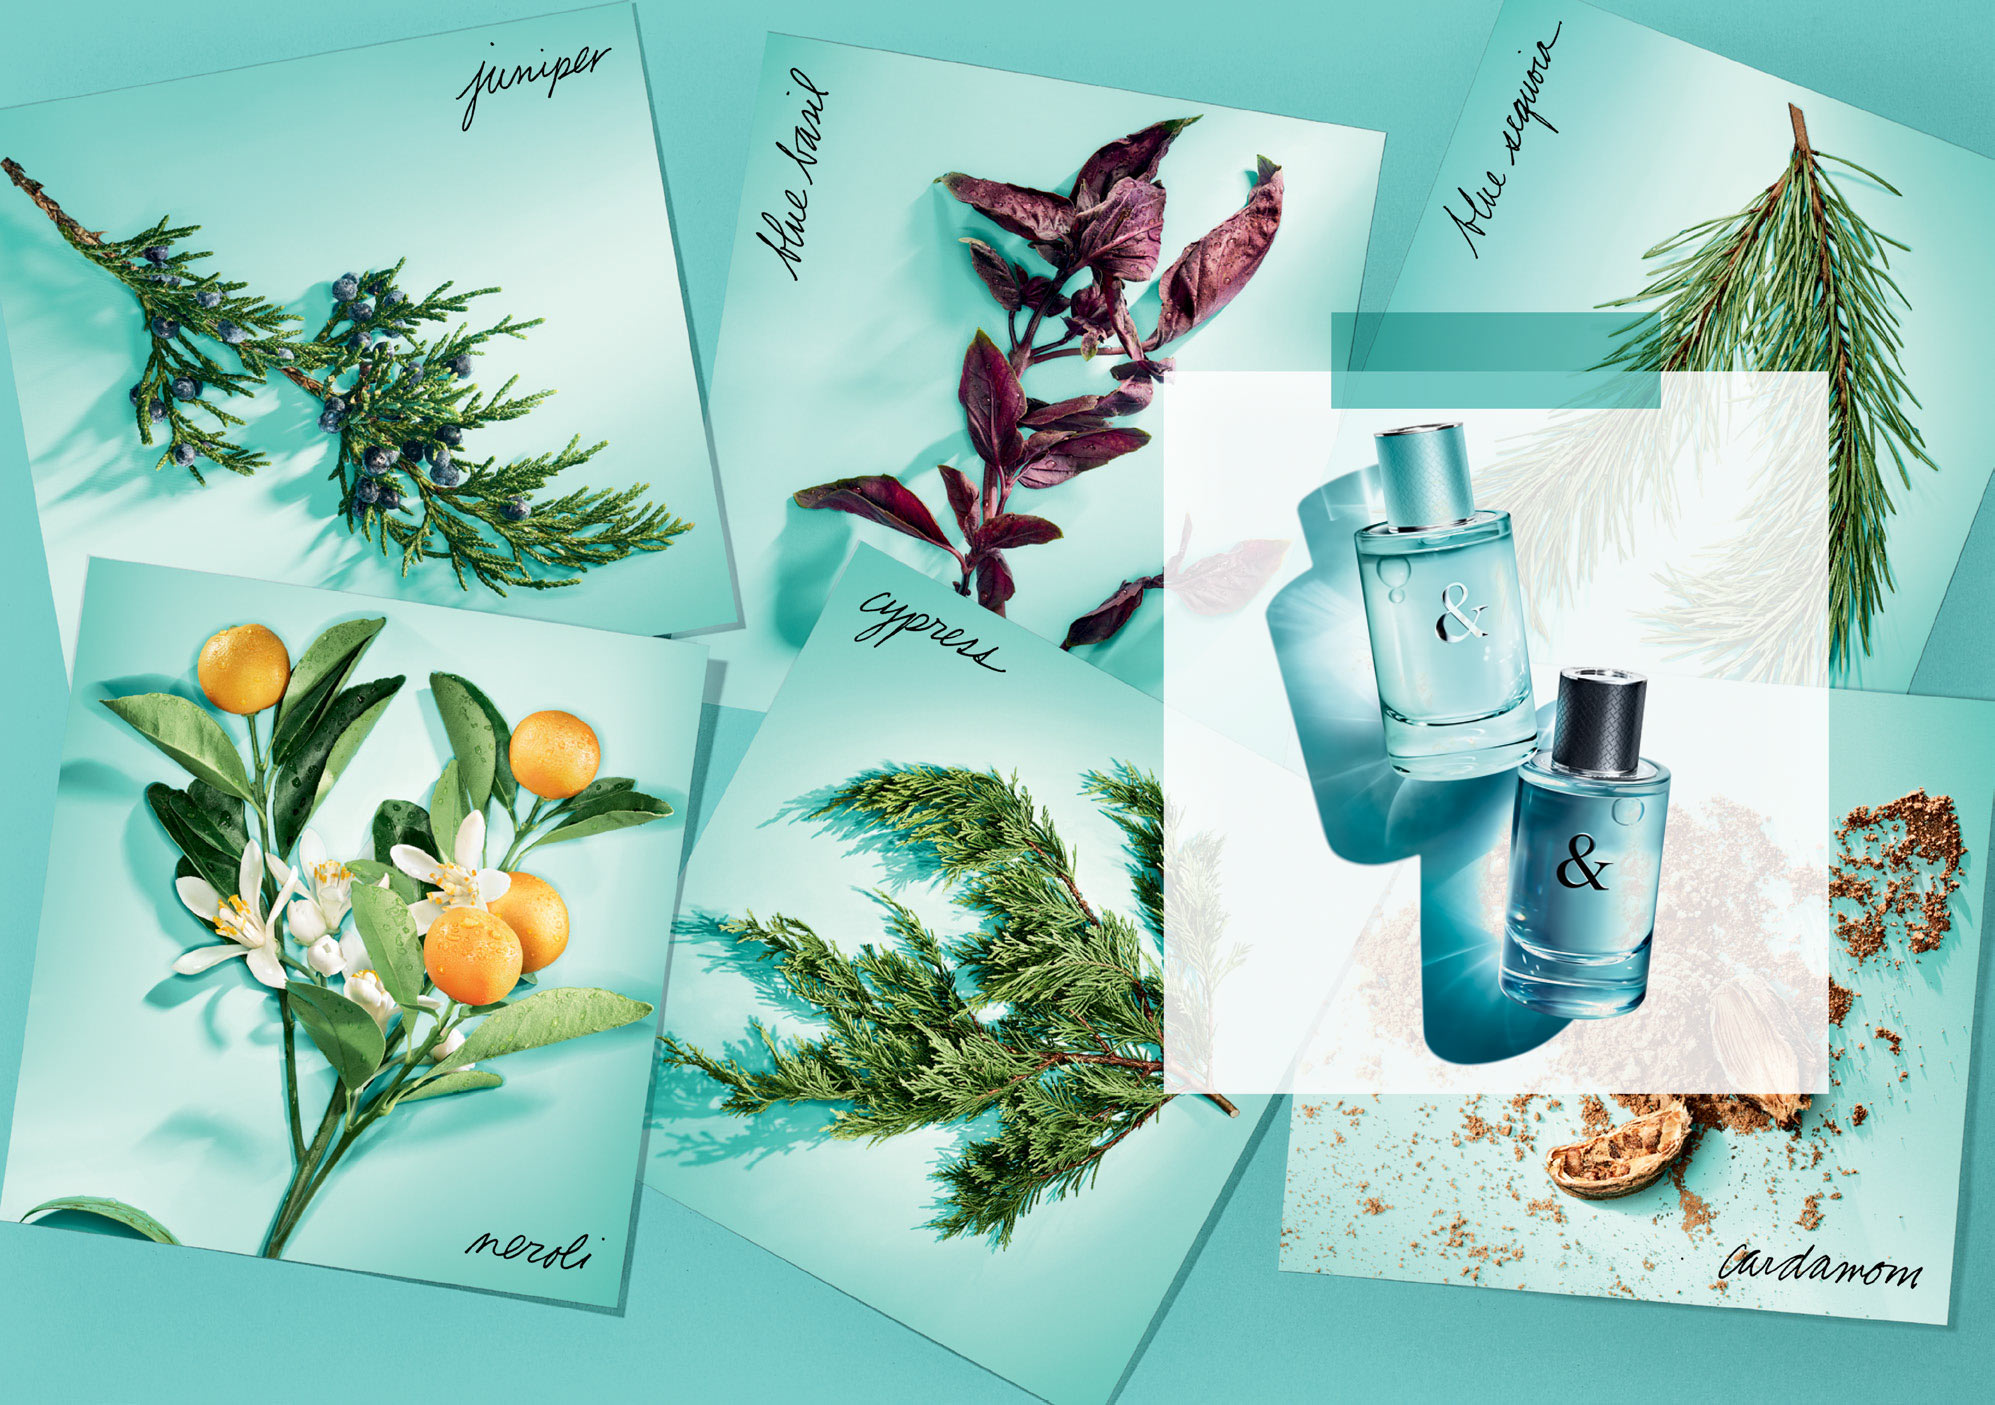 WIN Tiffany & Love Fragrances For Him & For Her